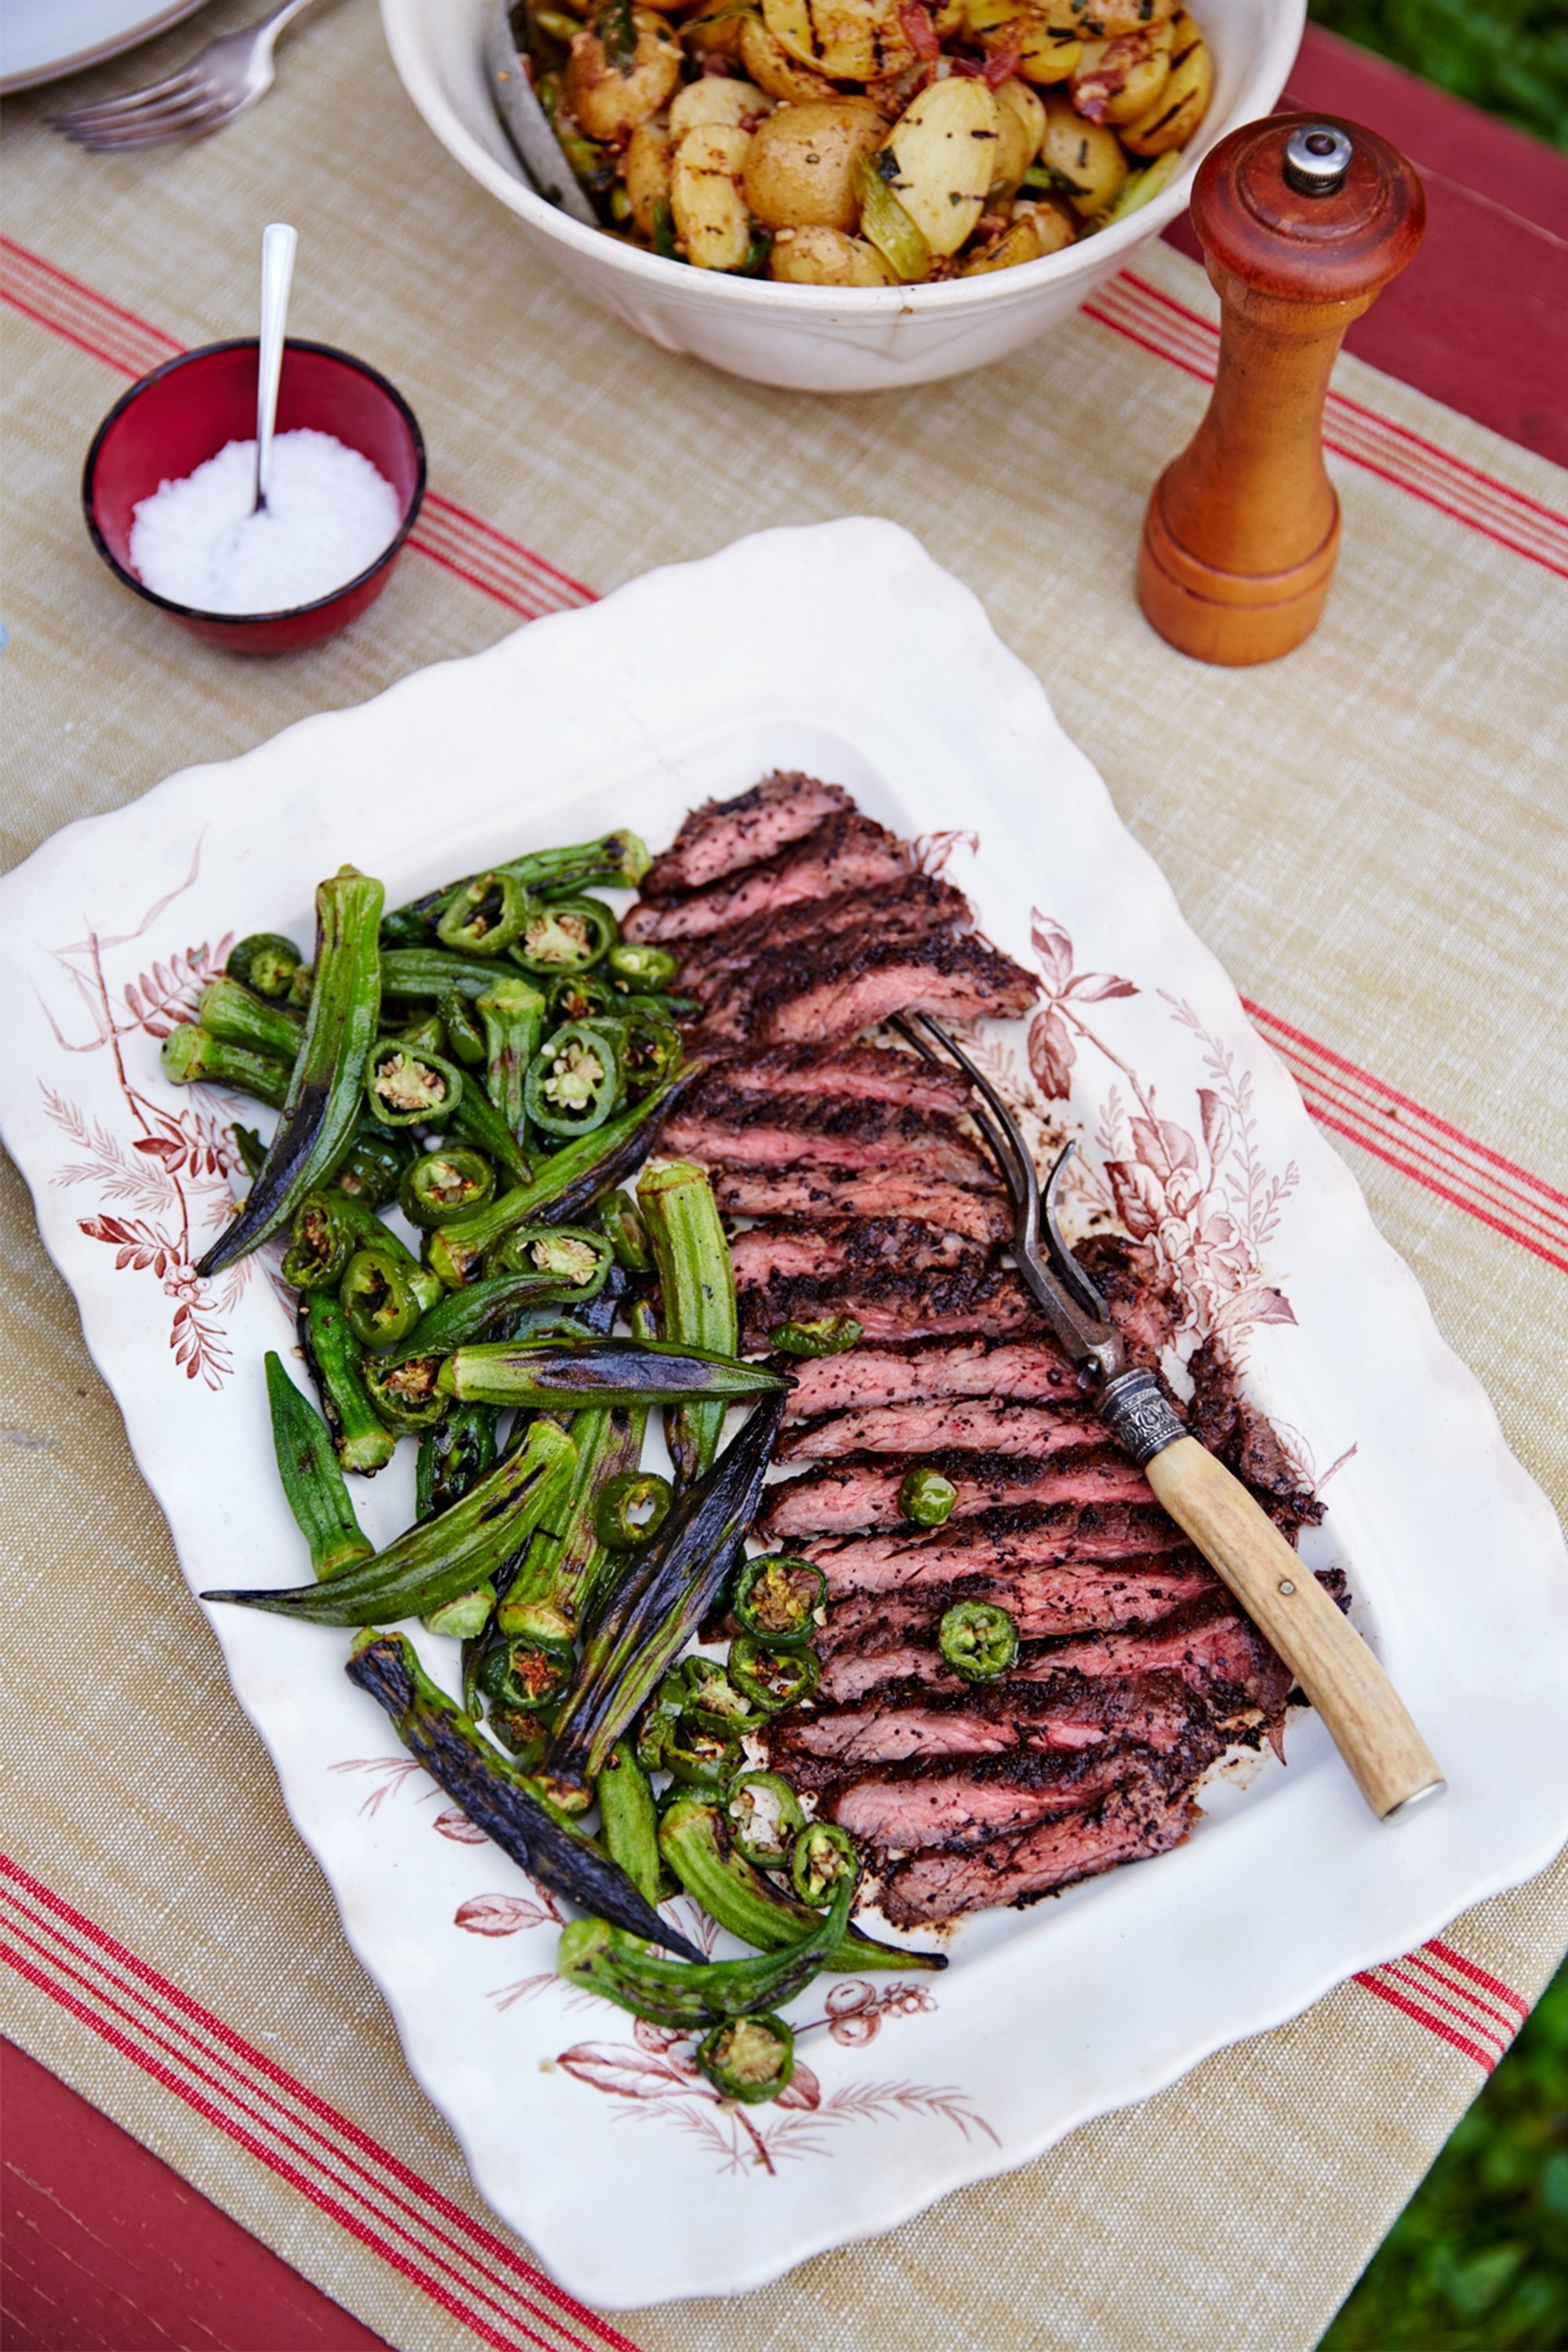 10 Best Dinner Ideas On The Grill grilling dinner recipesbnb 2020